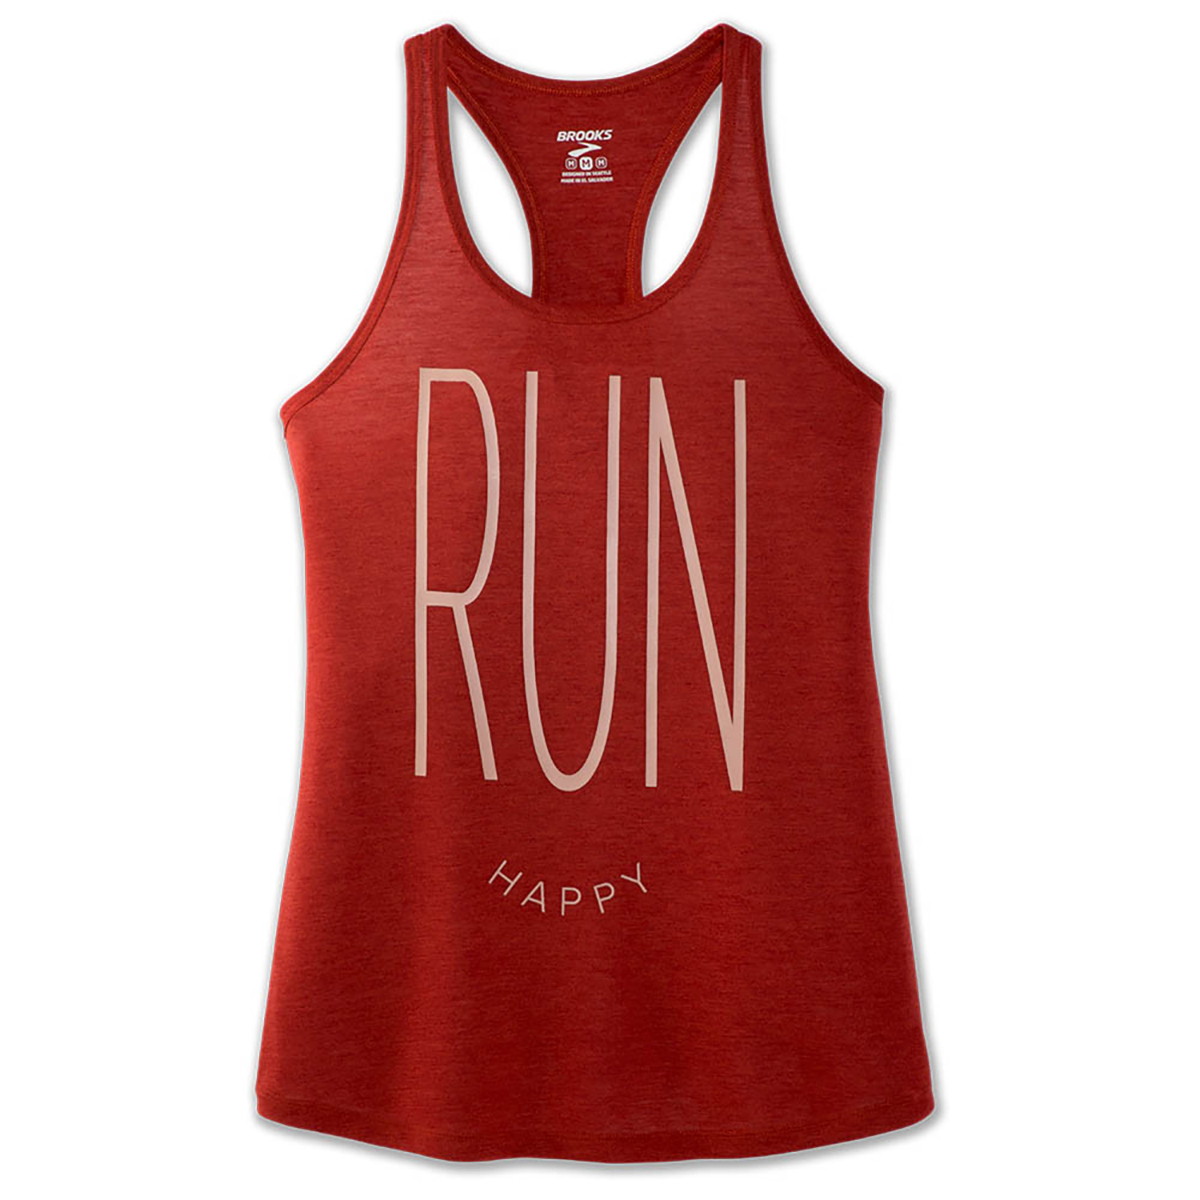 Women's Brooks Distance Graphic Tank  - Color: Heather Rosewood/Run Happy - Size: L, Heather Rosewood/Run Happy, large, image 2